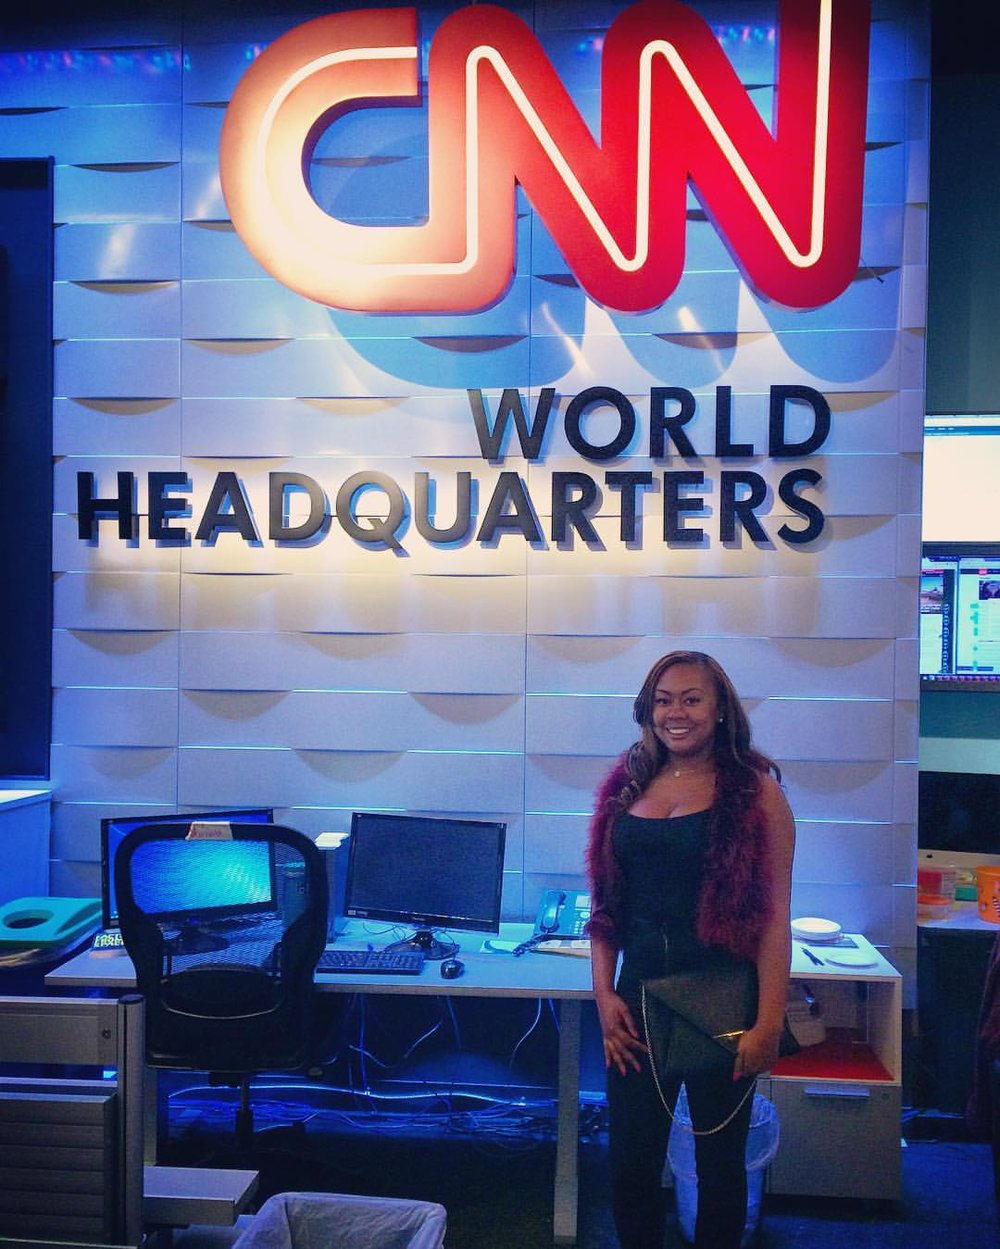 Touring CNN World Headquarters